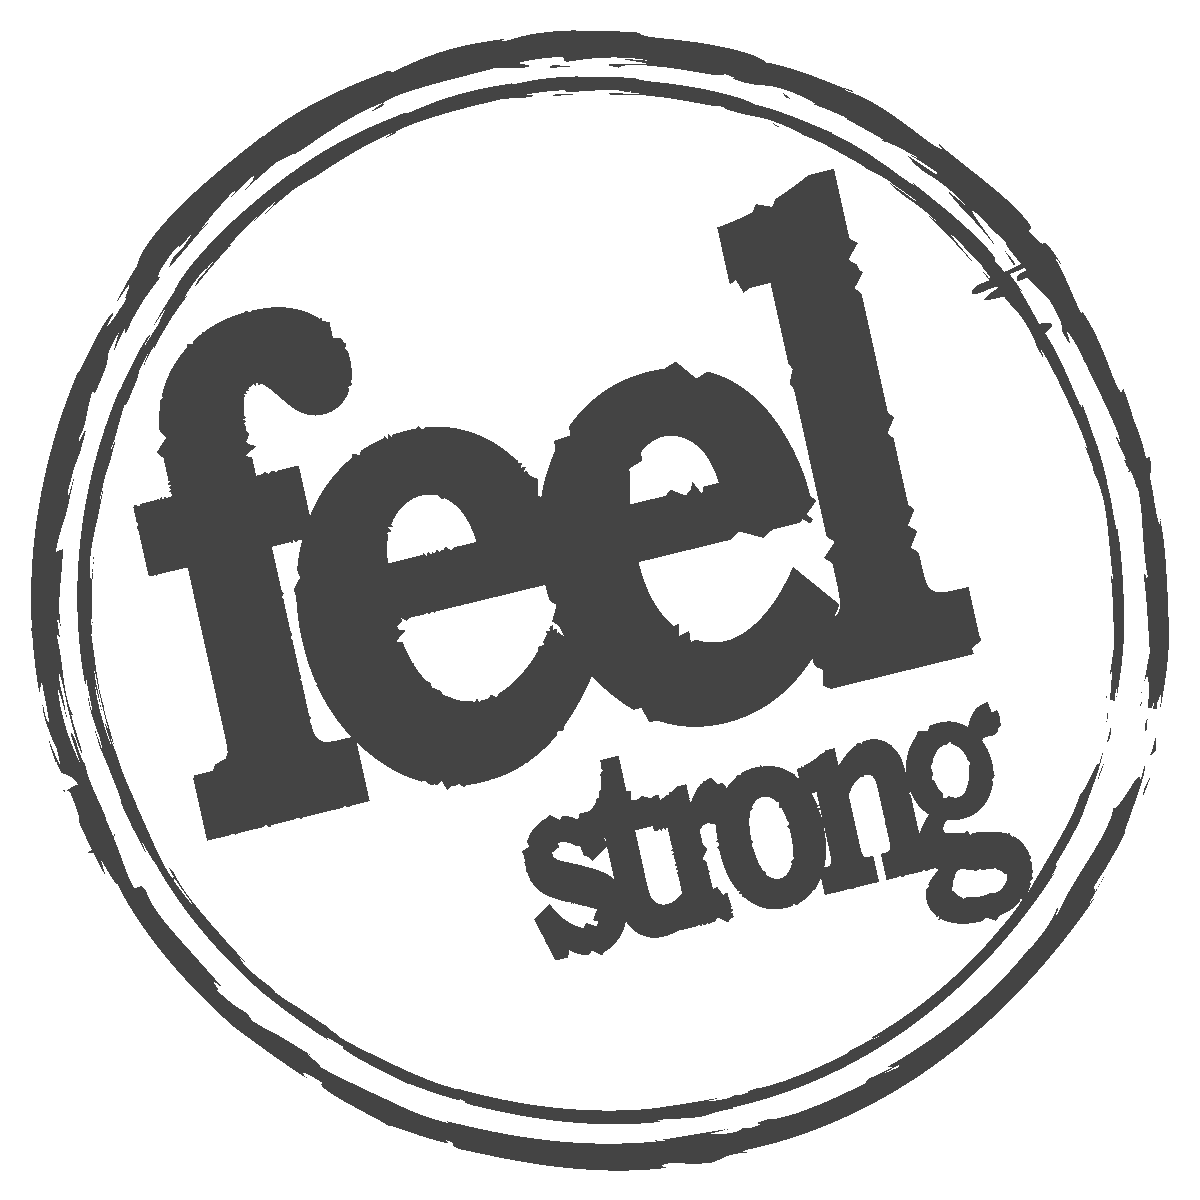 Feel Strong Sienttfuerte